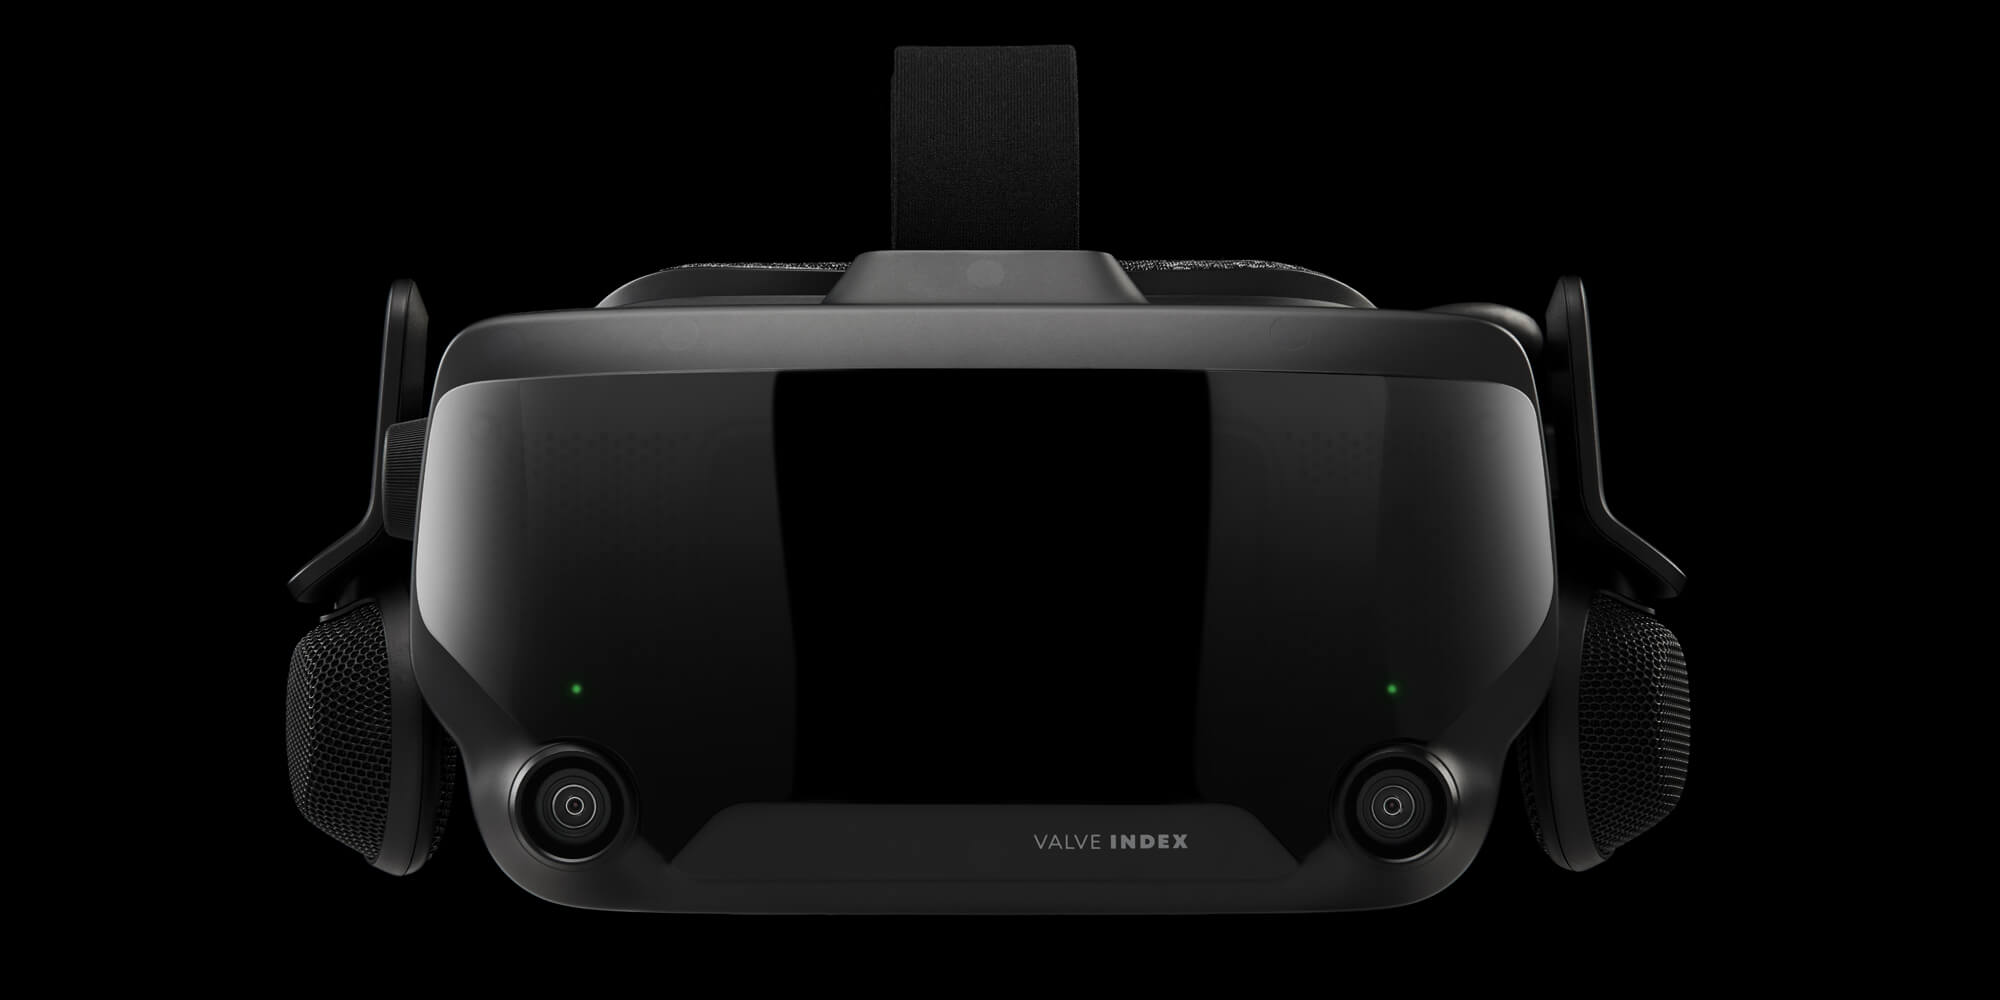 Valve's Index VR headset will officially cost $999, and